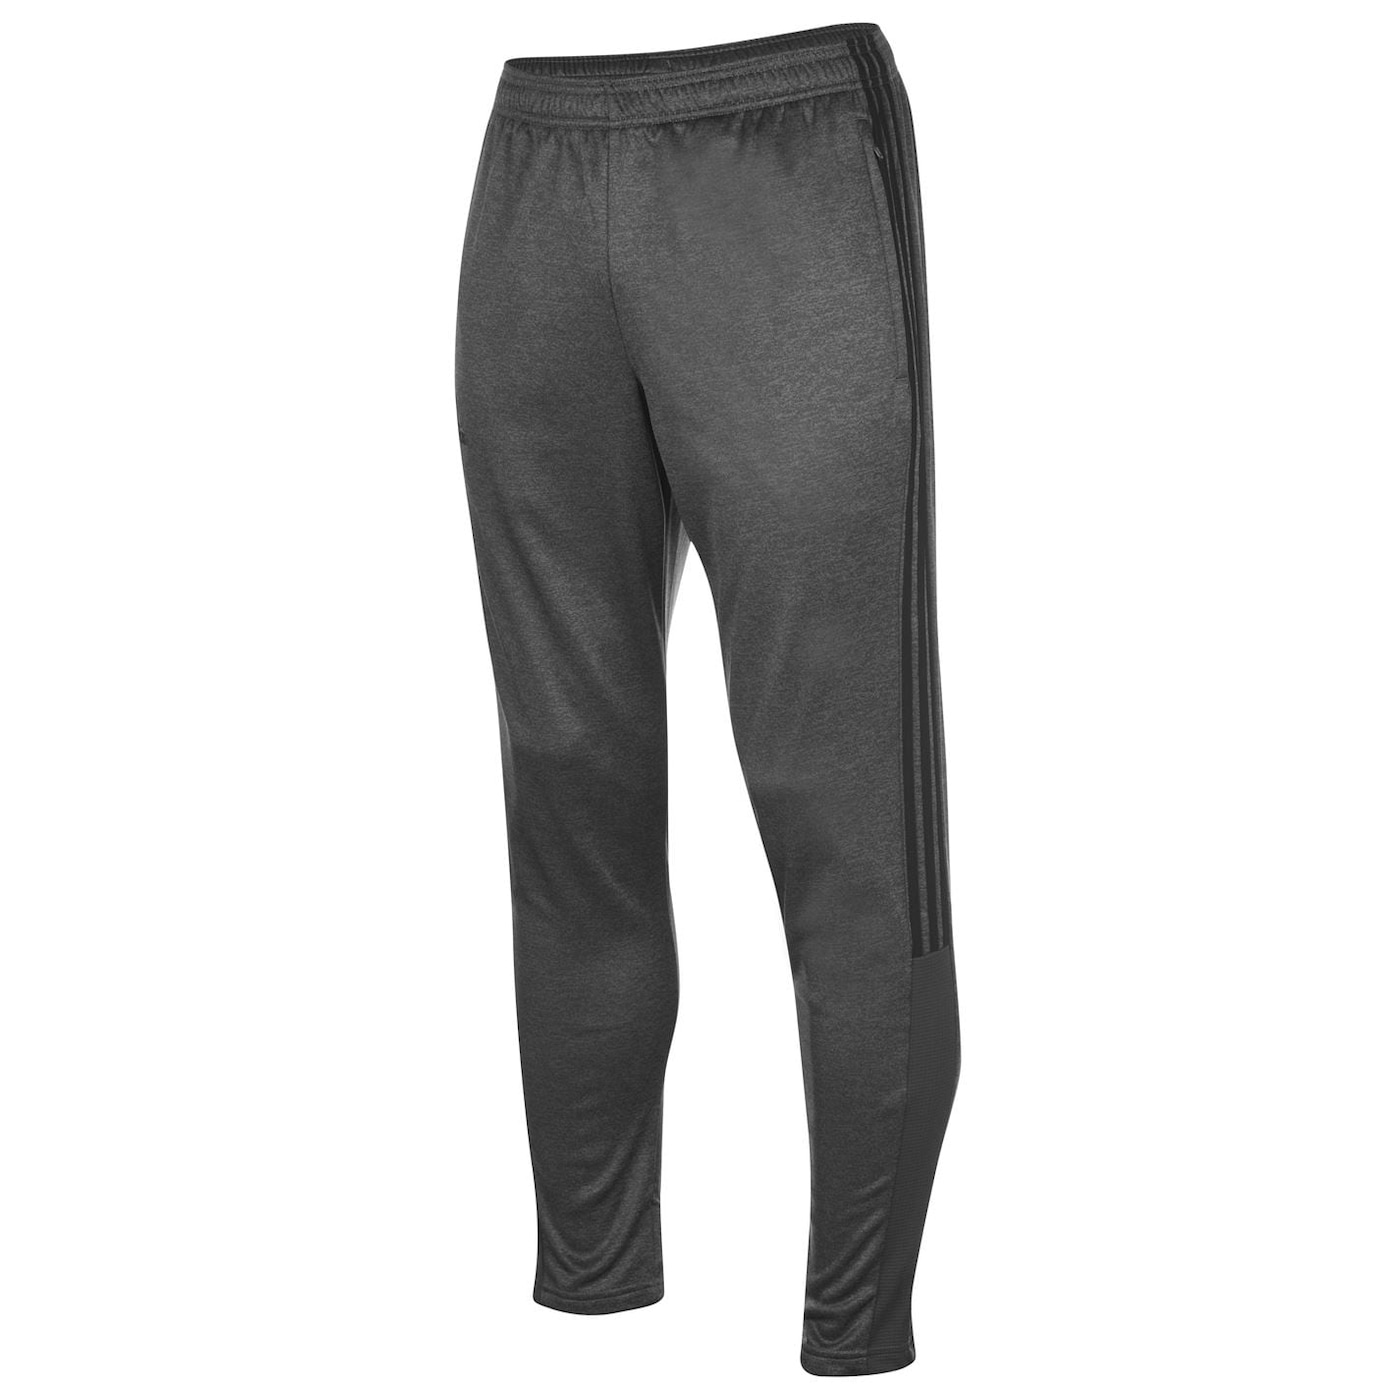 Adidas Winter Jogging Bottoms Mens